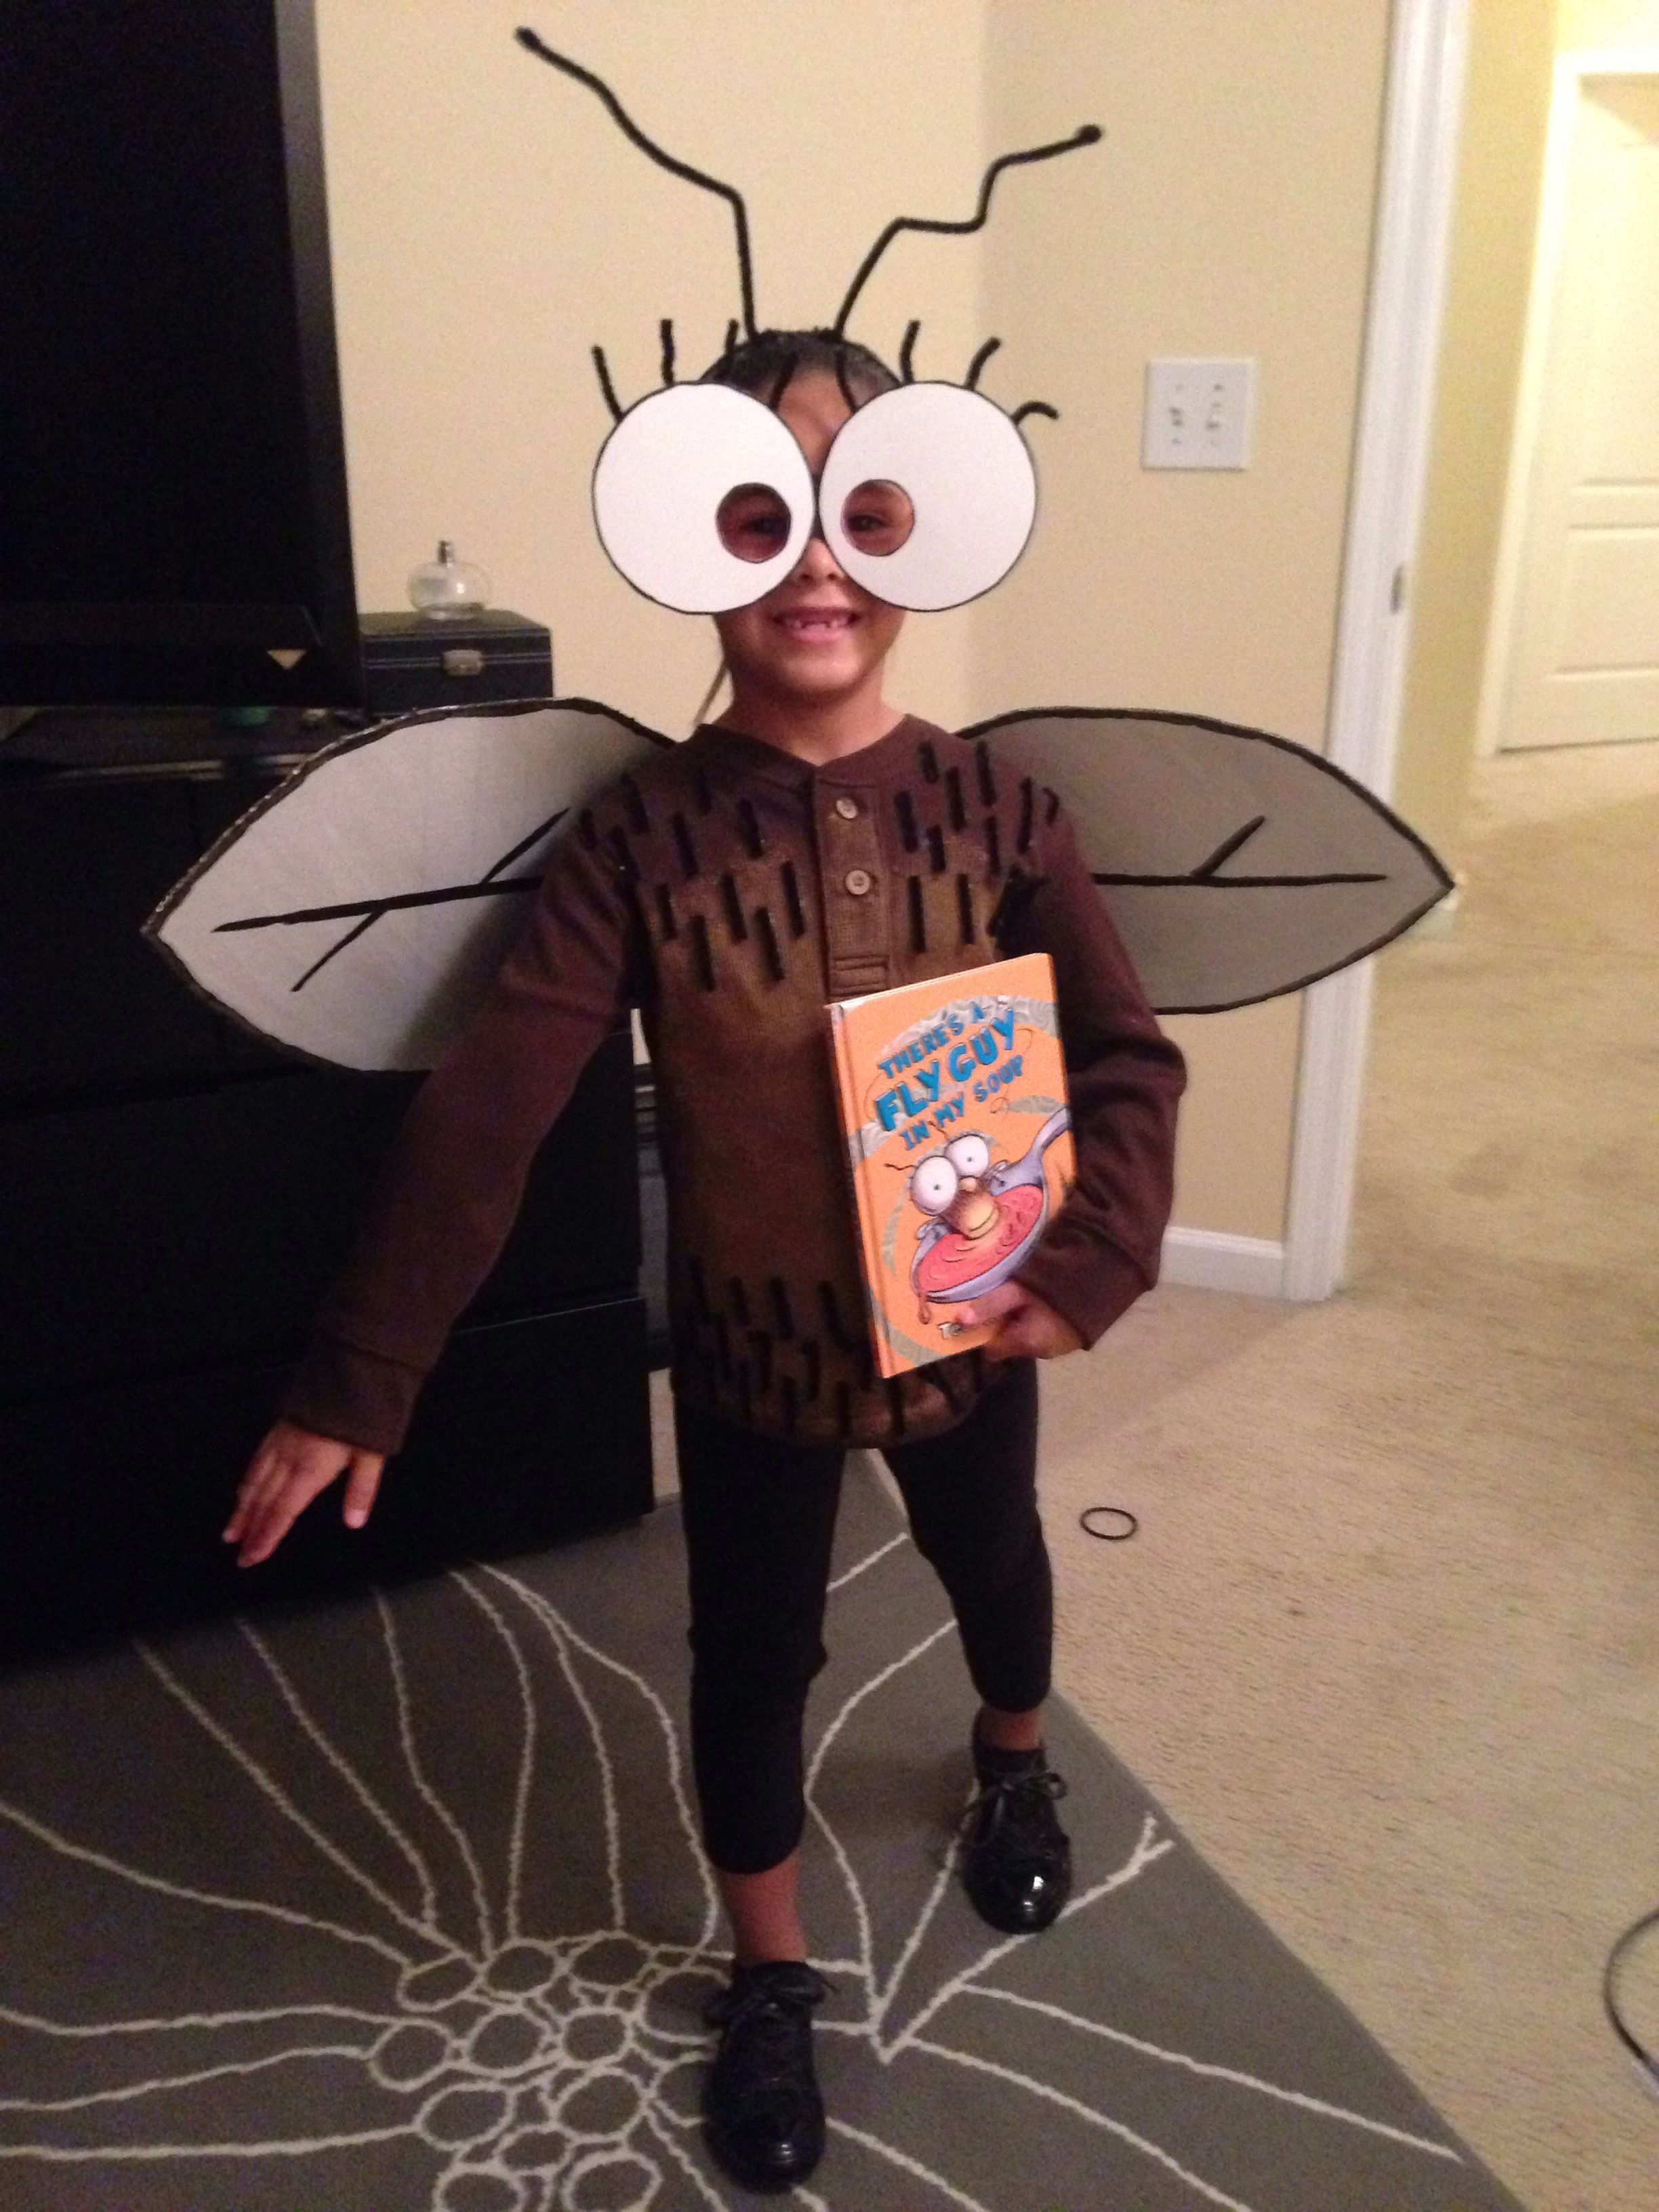 Homemade Fly guy costume for fall into books. & Homemade Fly guy costume for fall into books. | For the kiddos ...